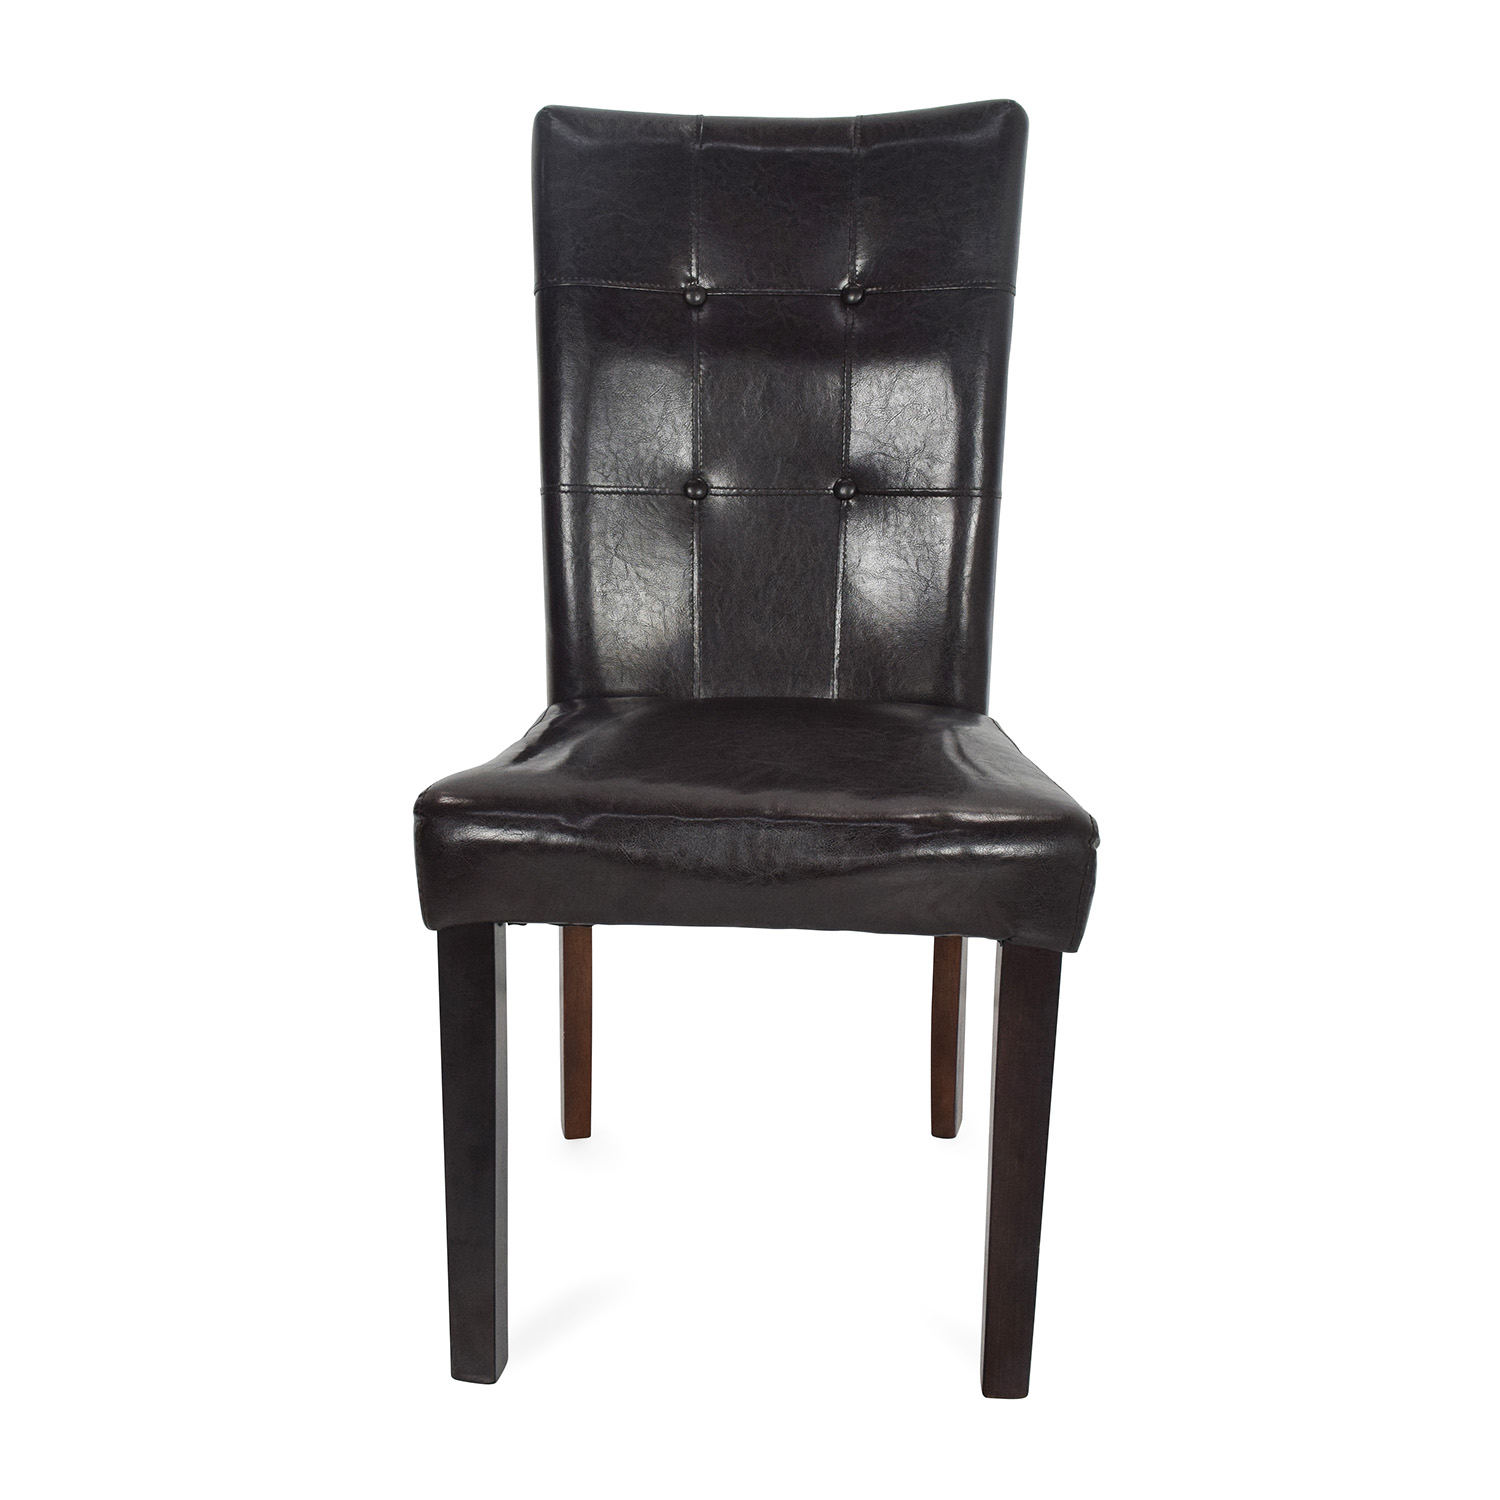 kirklands dining chairs braun chair lift parts 49 off kirkland 39s leather accent